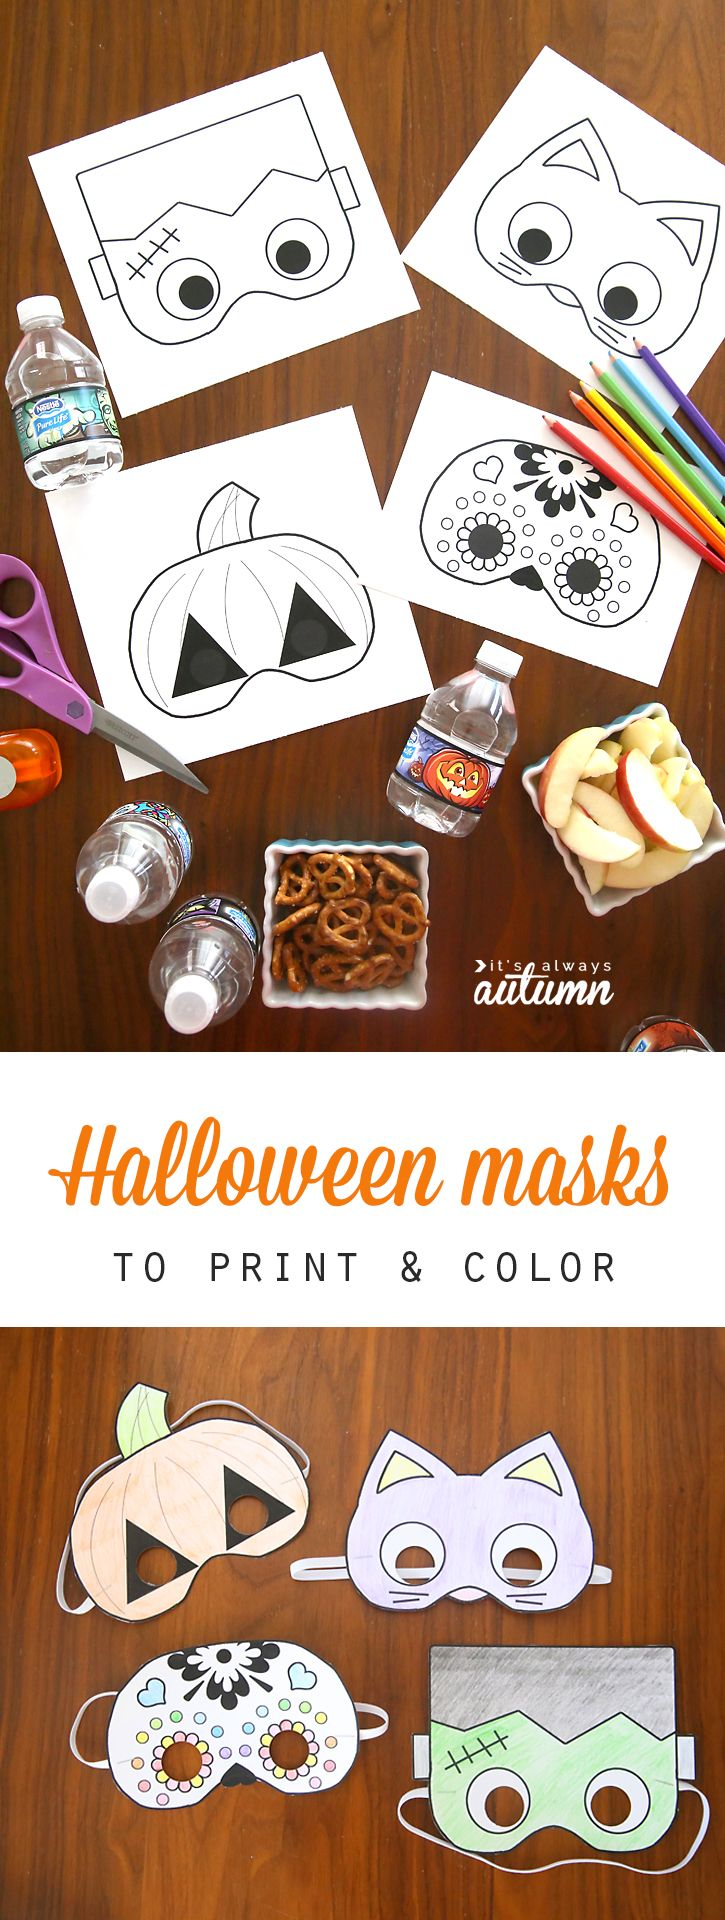 halloween masks to print and color - Halloween Crafts For Preschoolers Easy